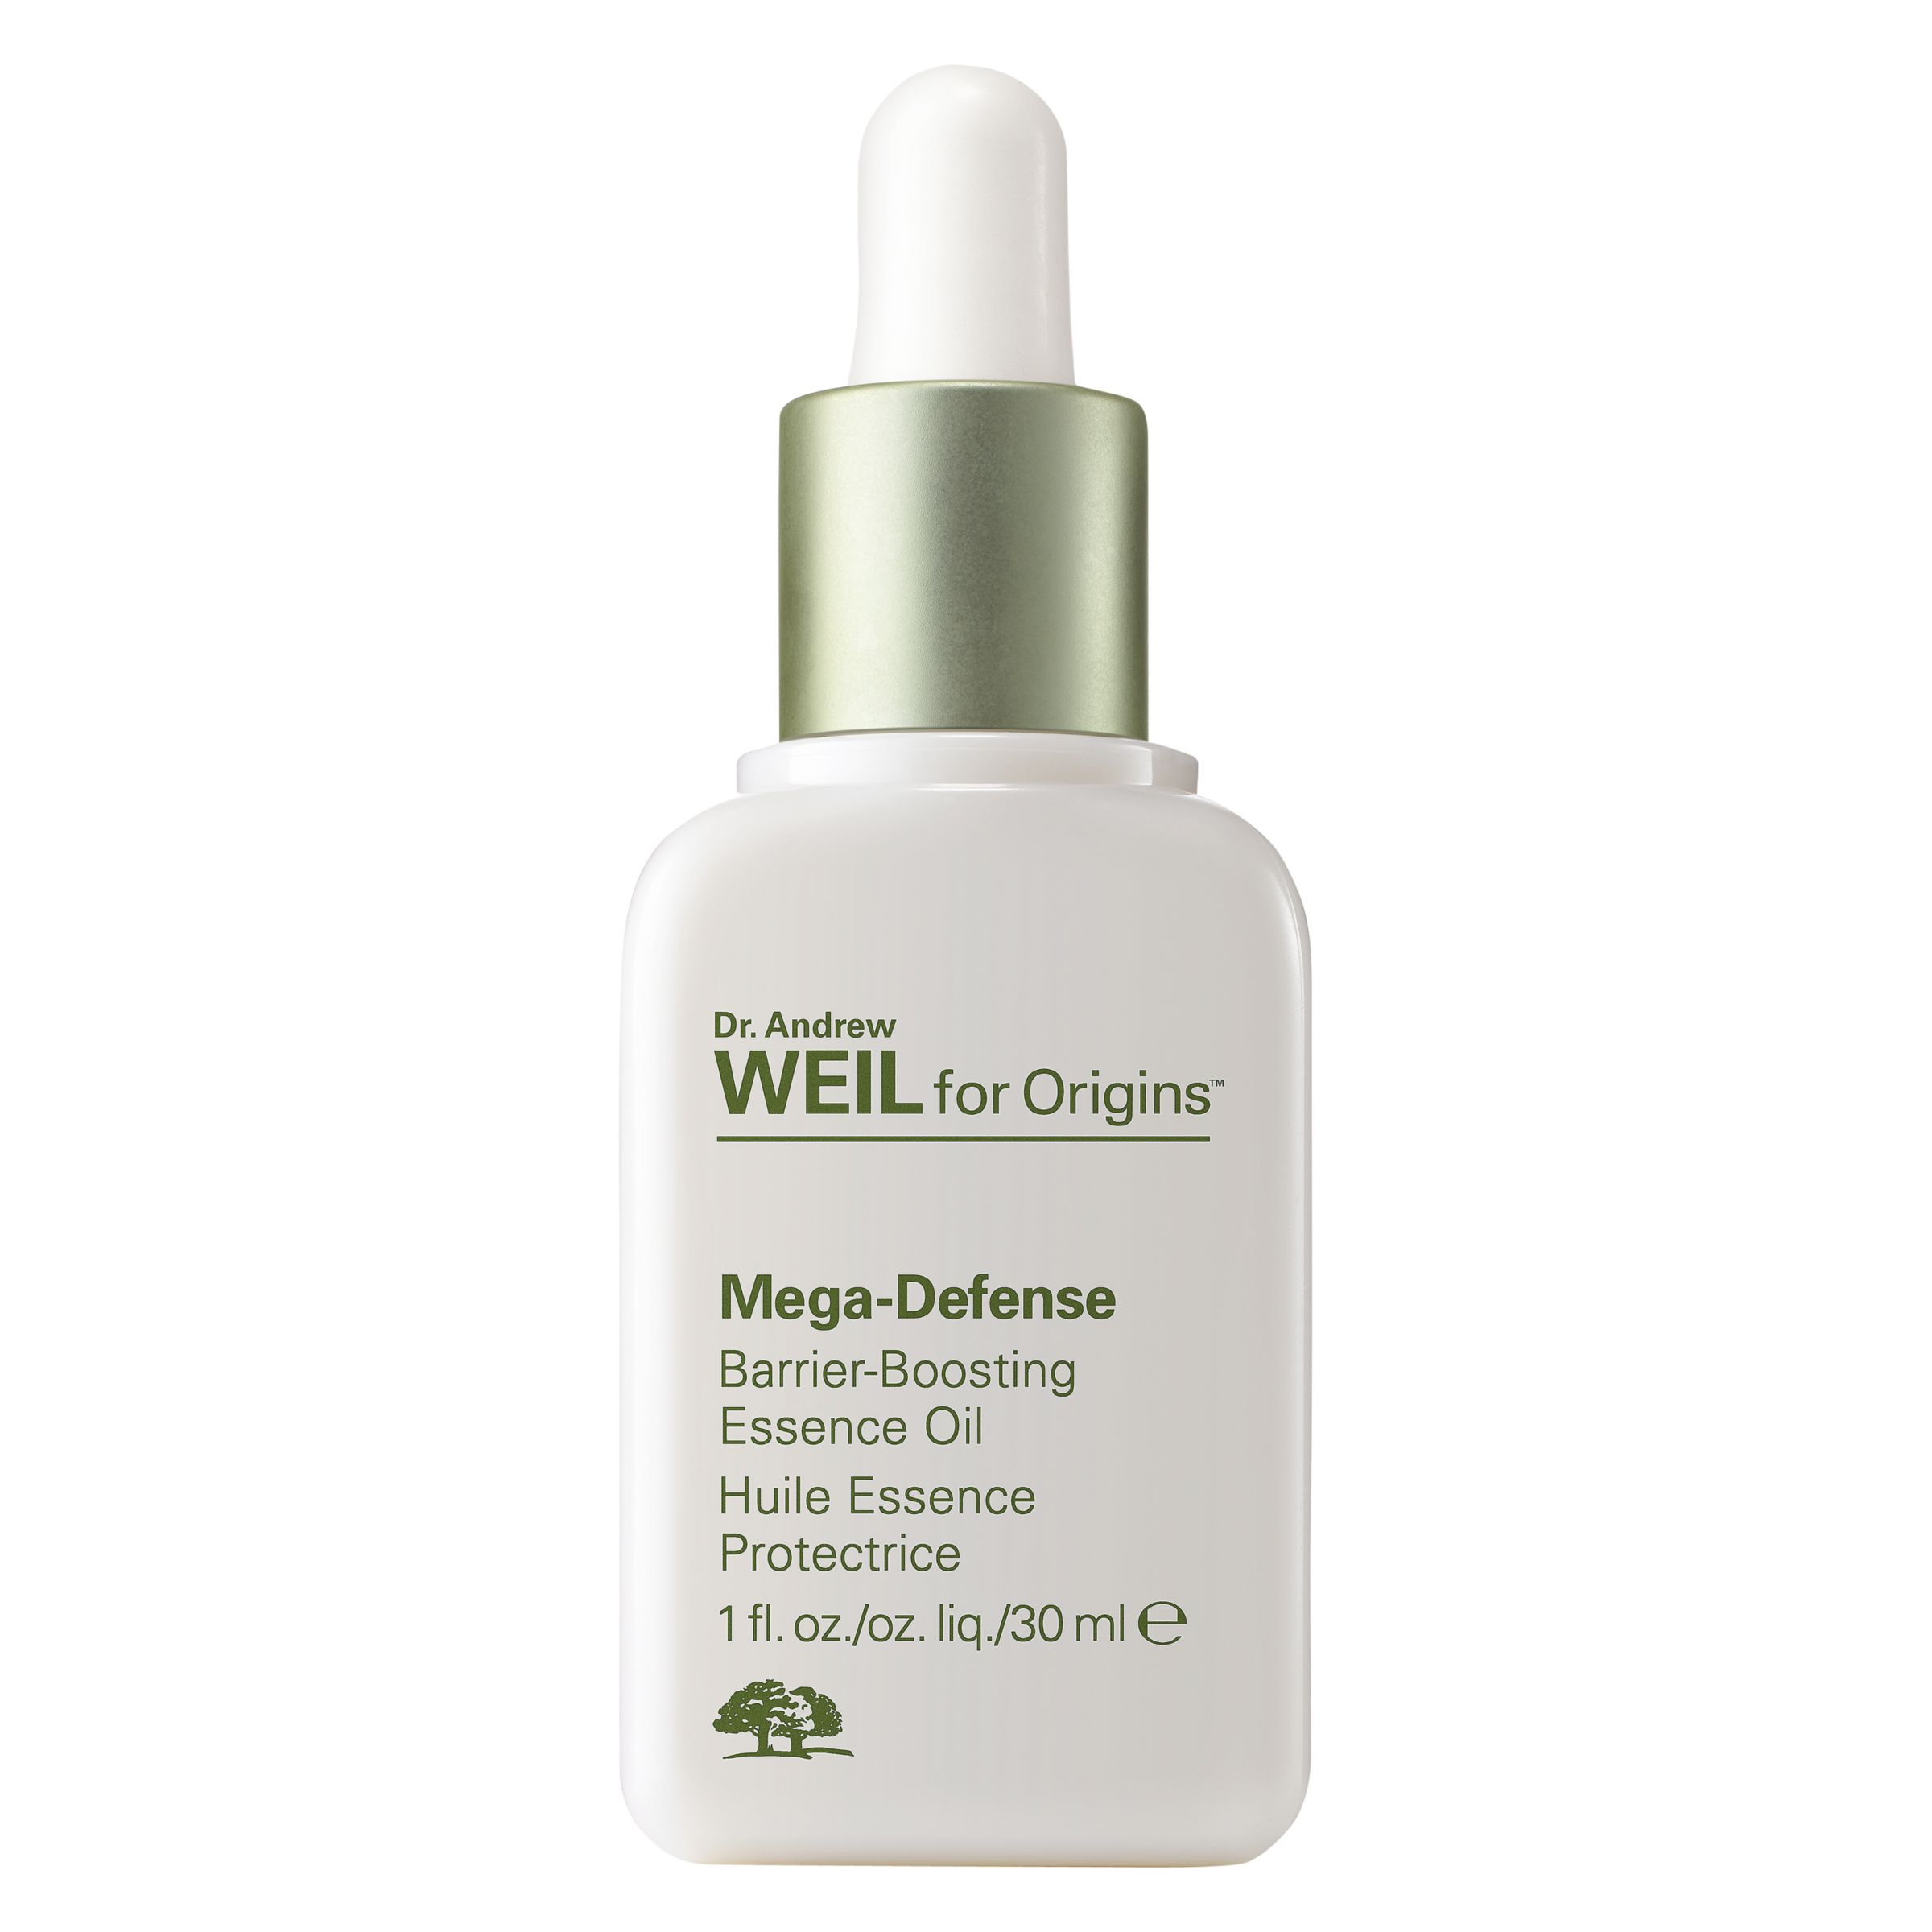 Origins Dr. Andrew Weil for Origins™ Mega-Defence Barrier-Boosting Essence Oil, 30ml